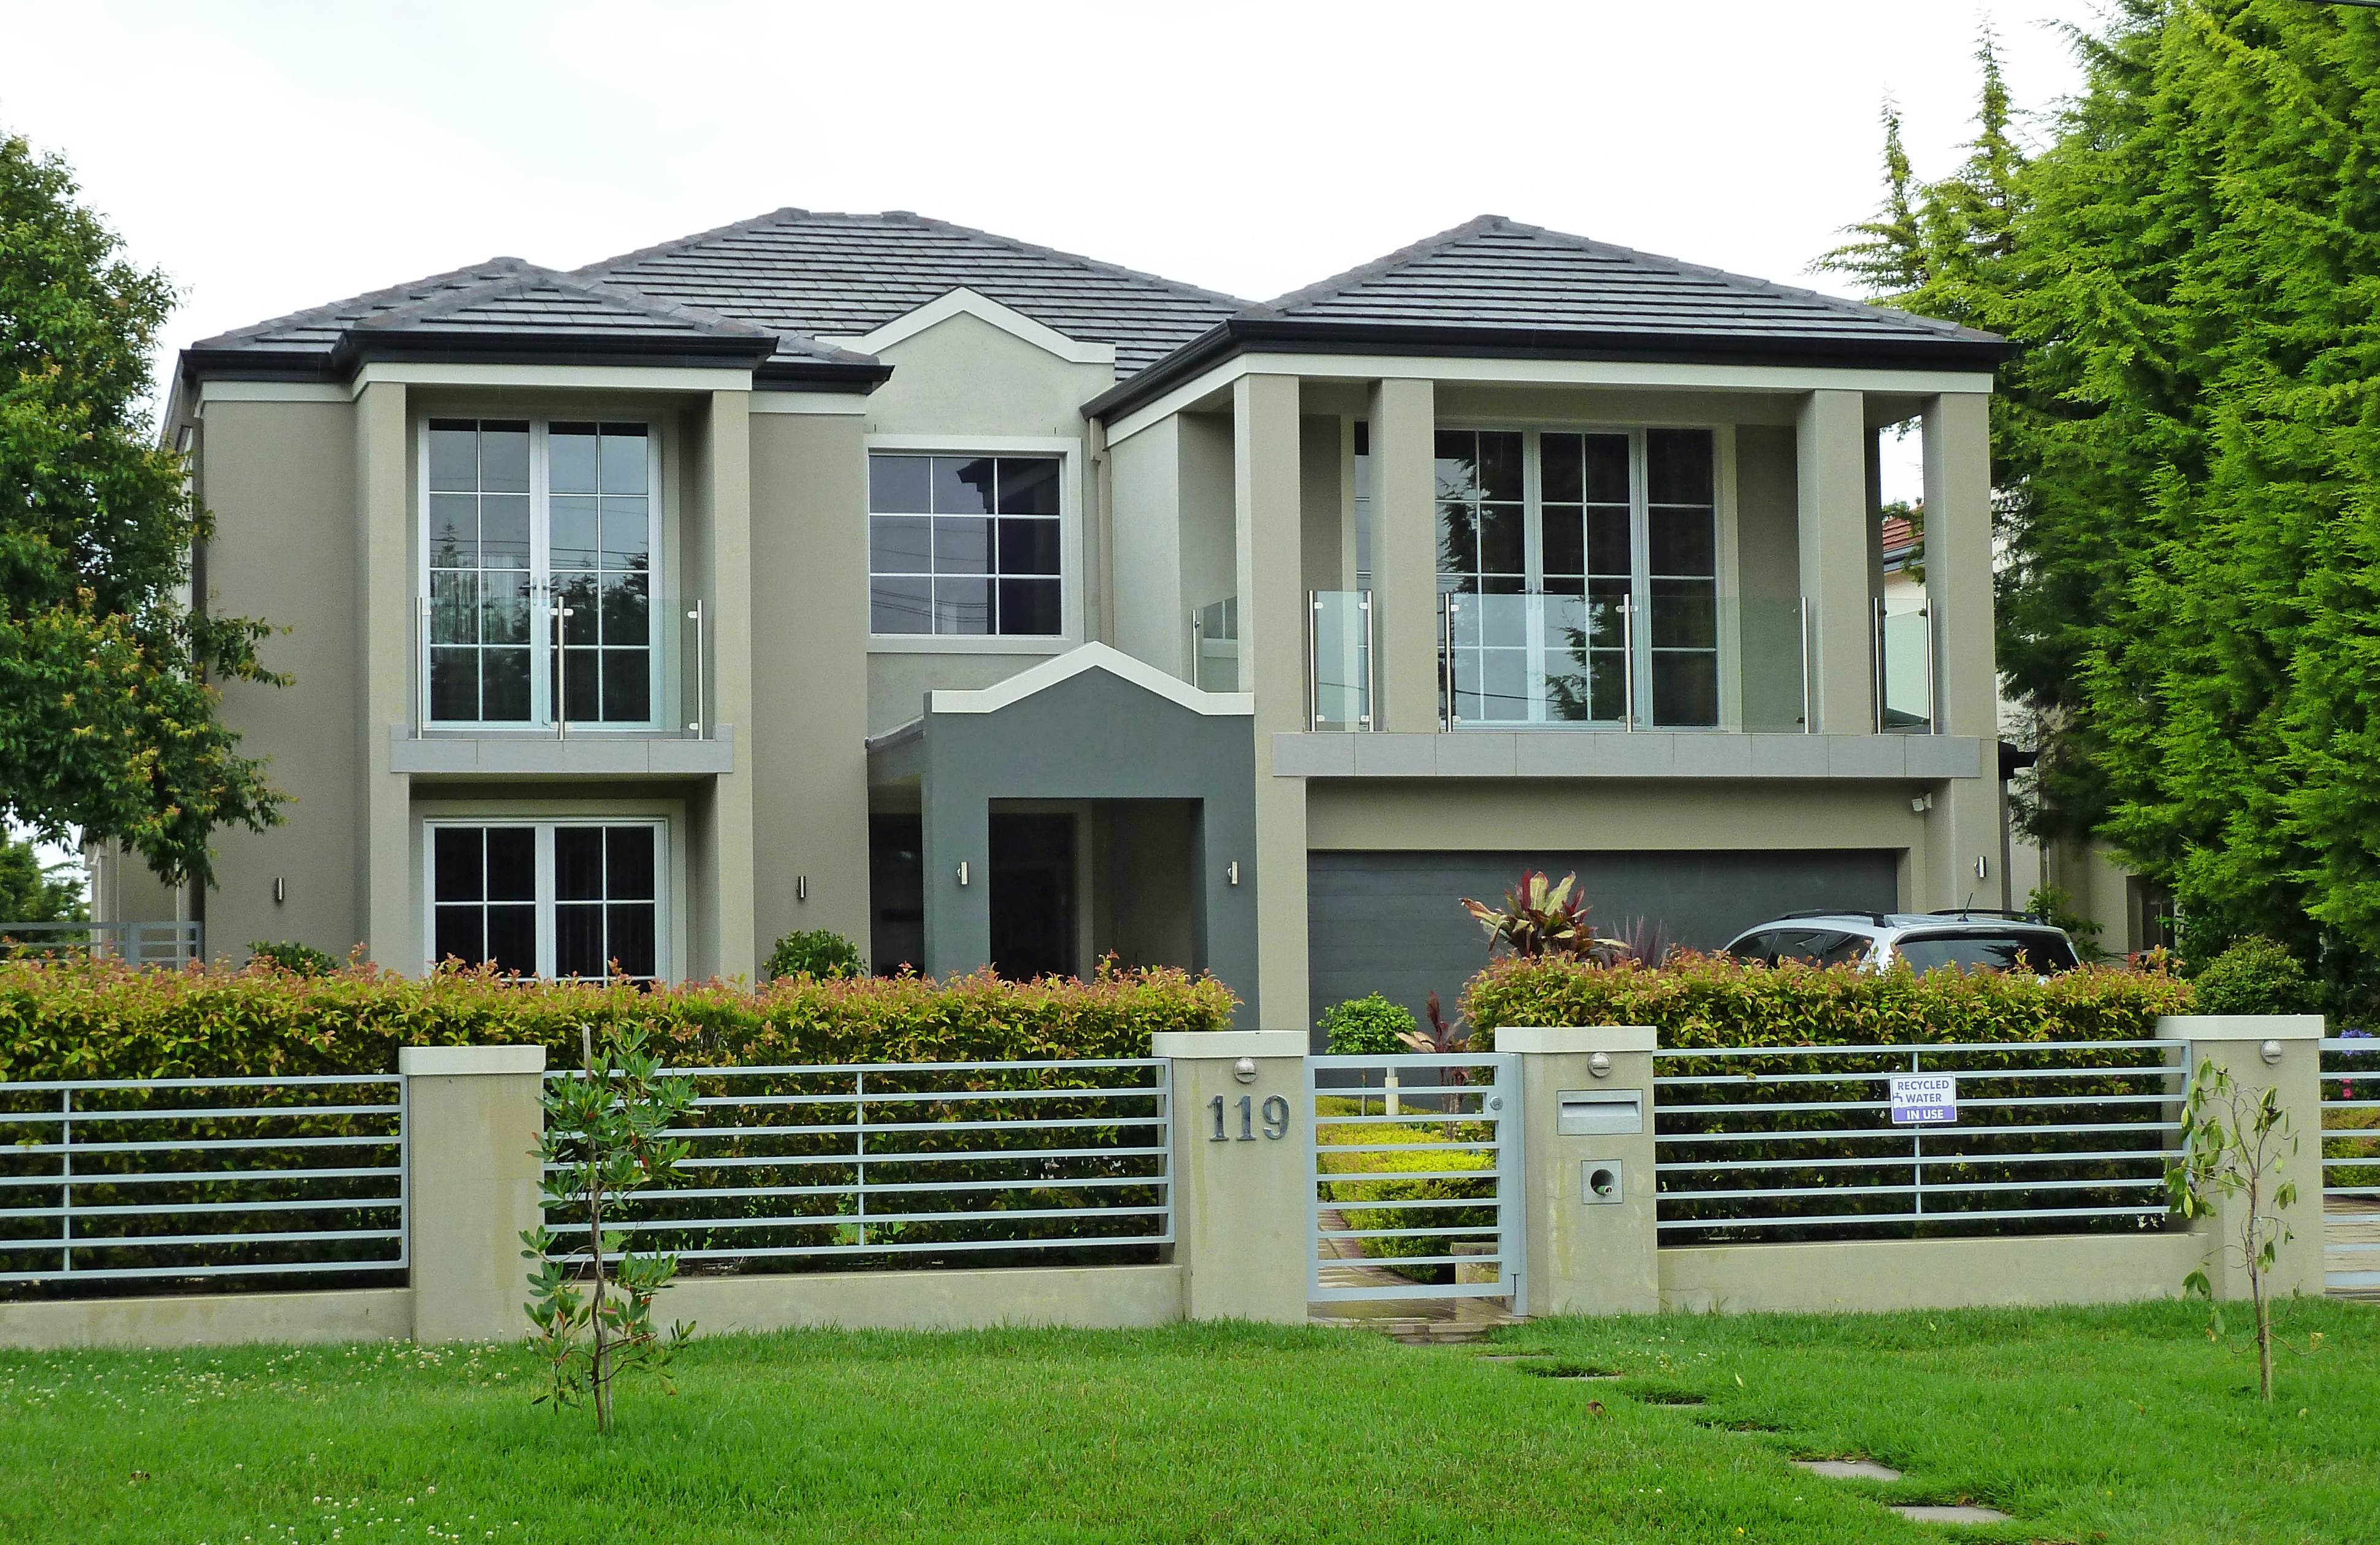 Australian residential architectural styles wiki for Residential architecture styles